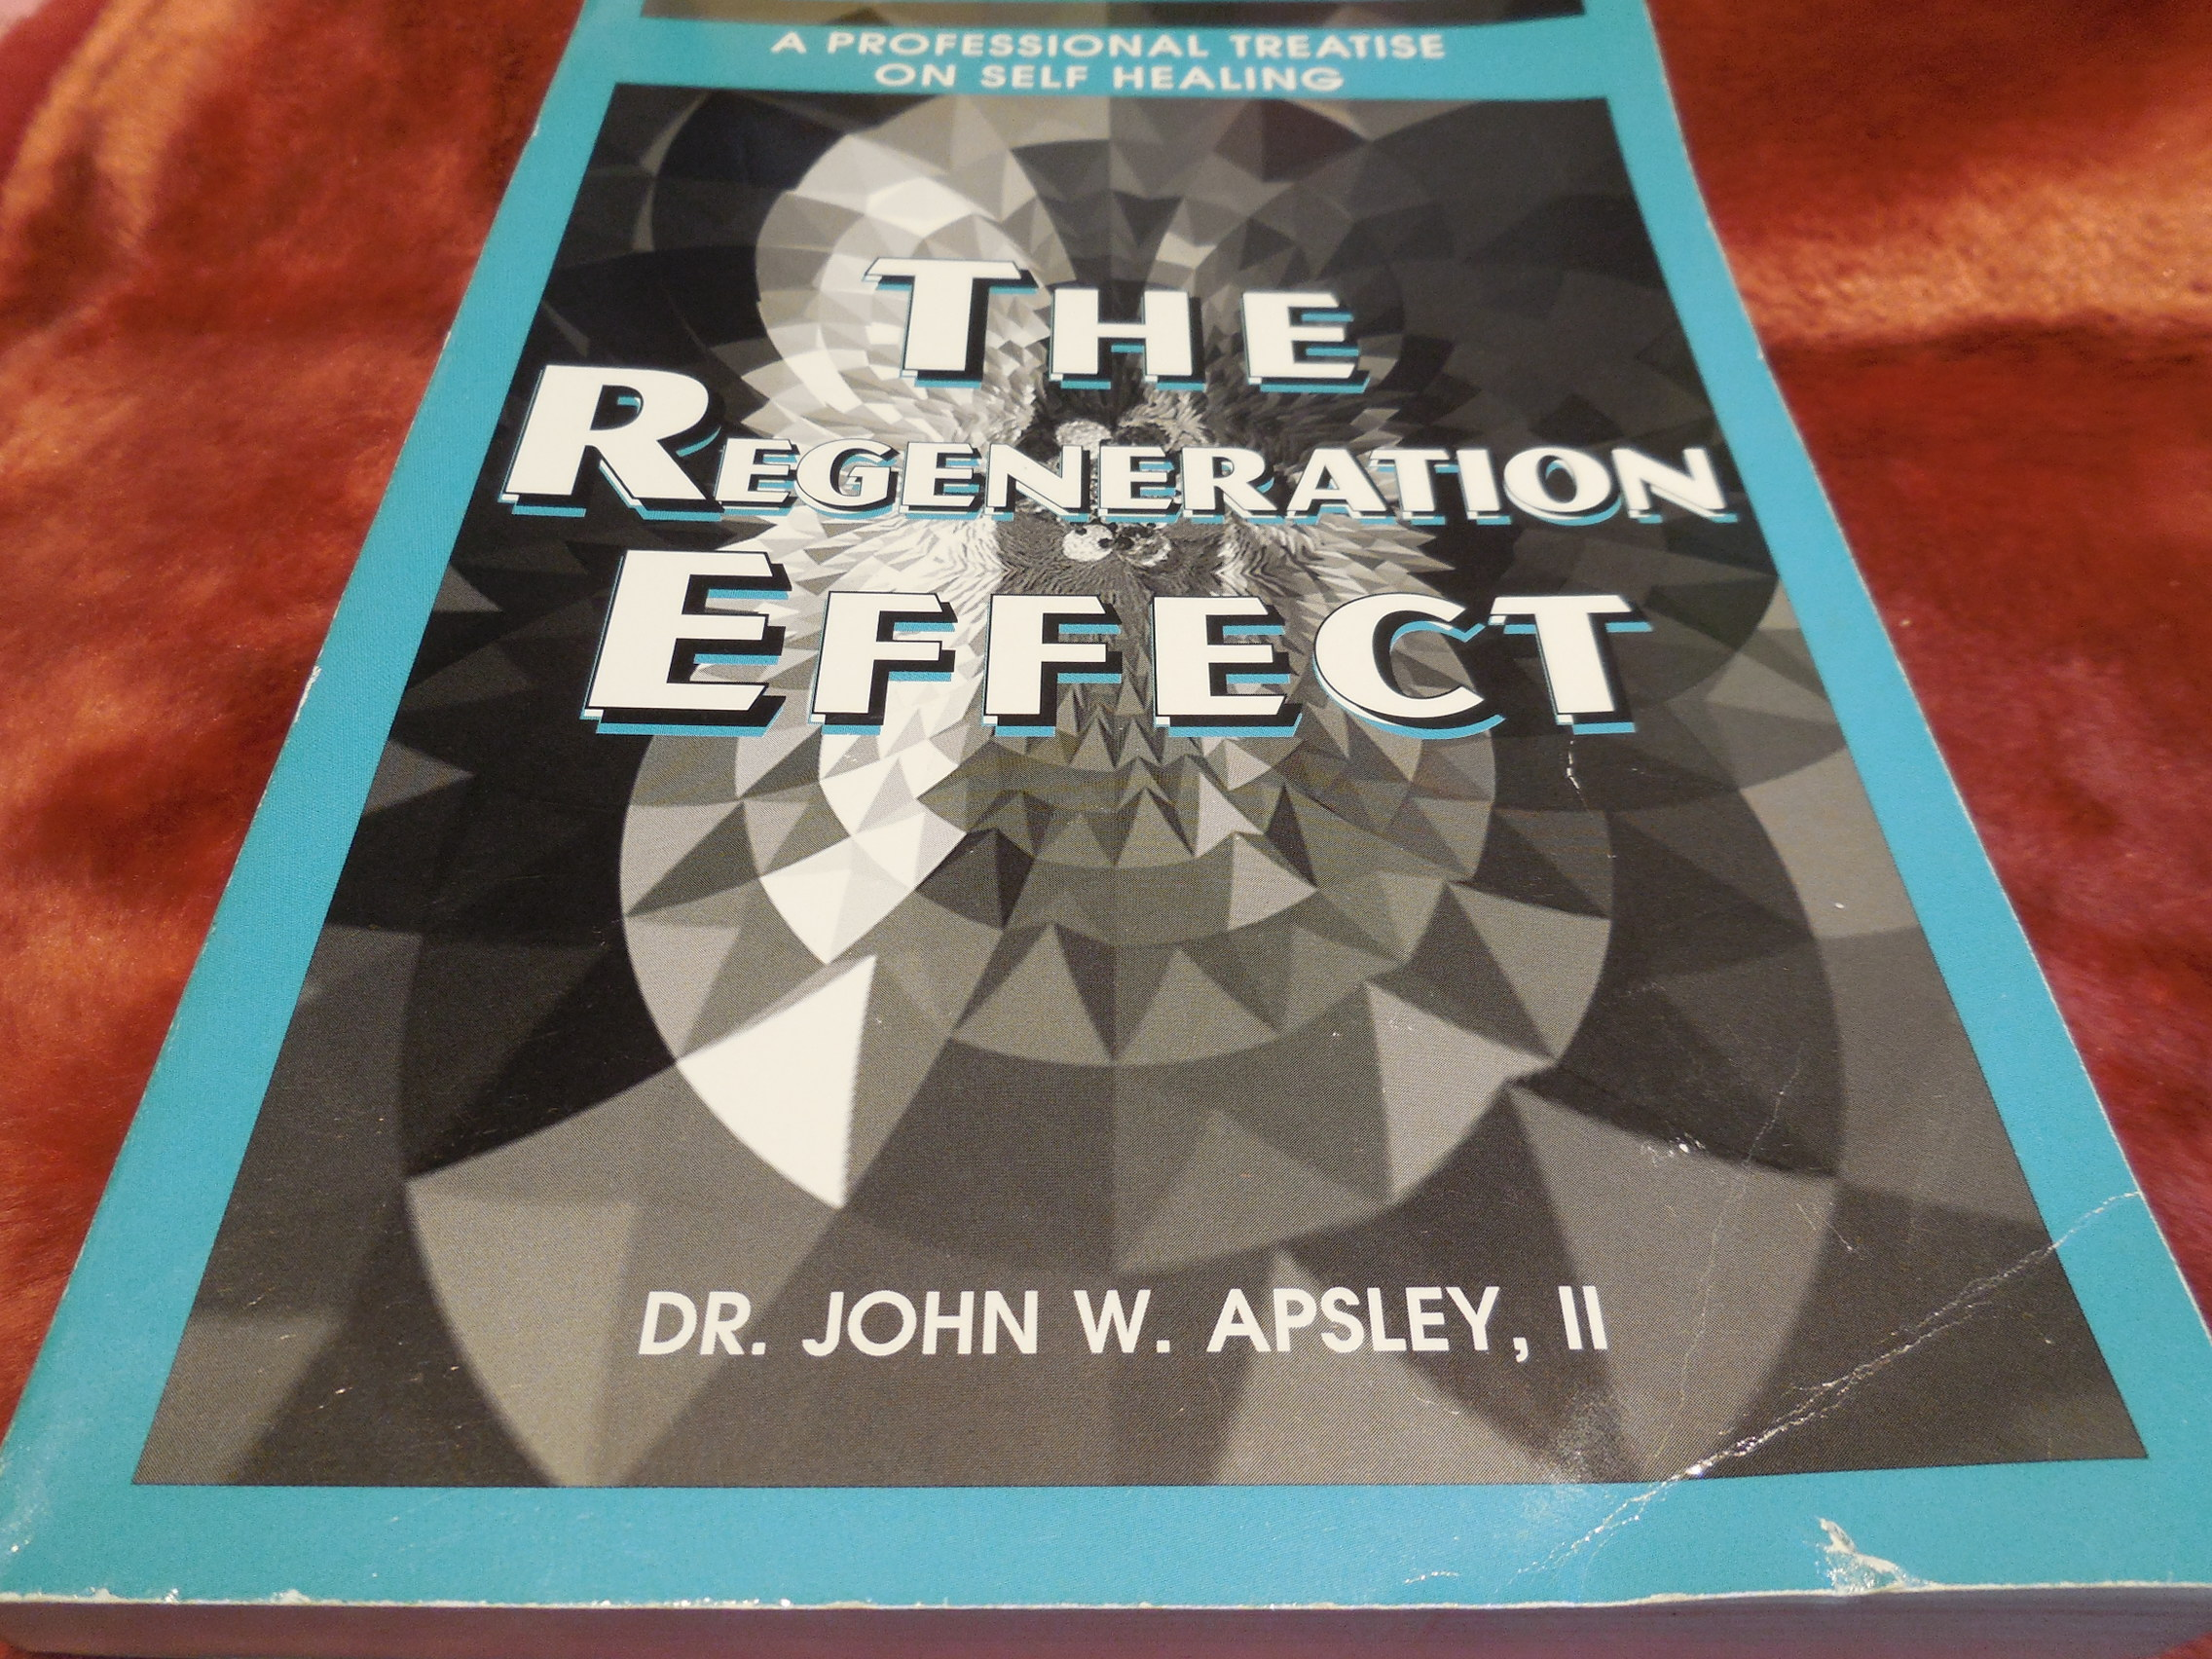 Image for The Regeneration Effect, Volume  2: A Professional Treatise on Self-Healing